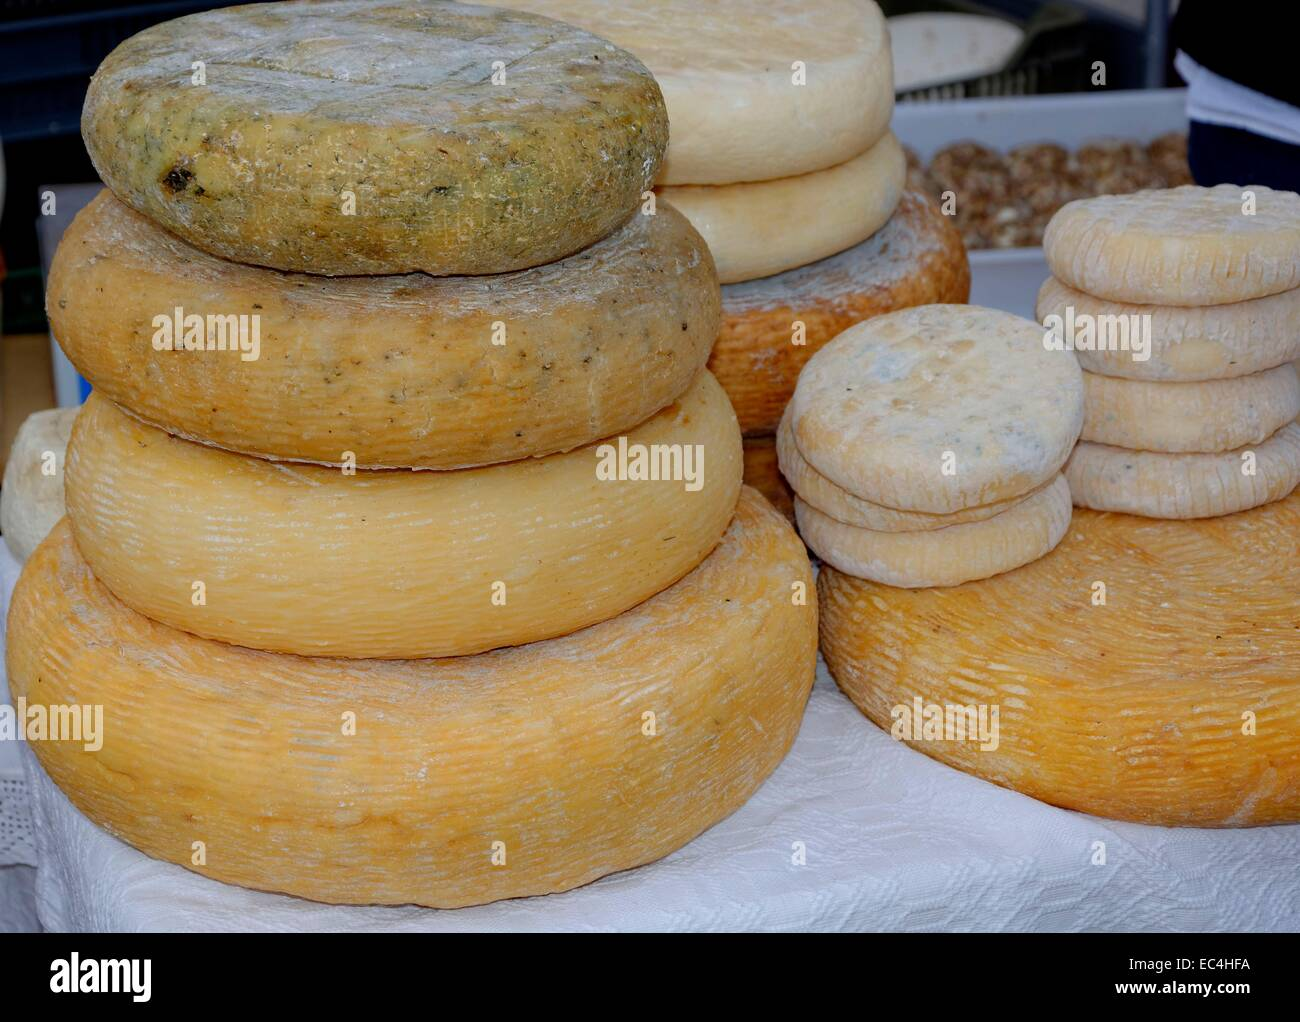 Hard cheeses in various stages of maturity - Stock Image